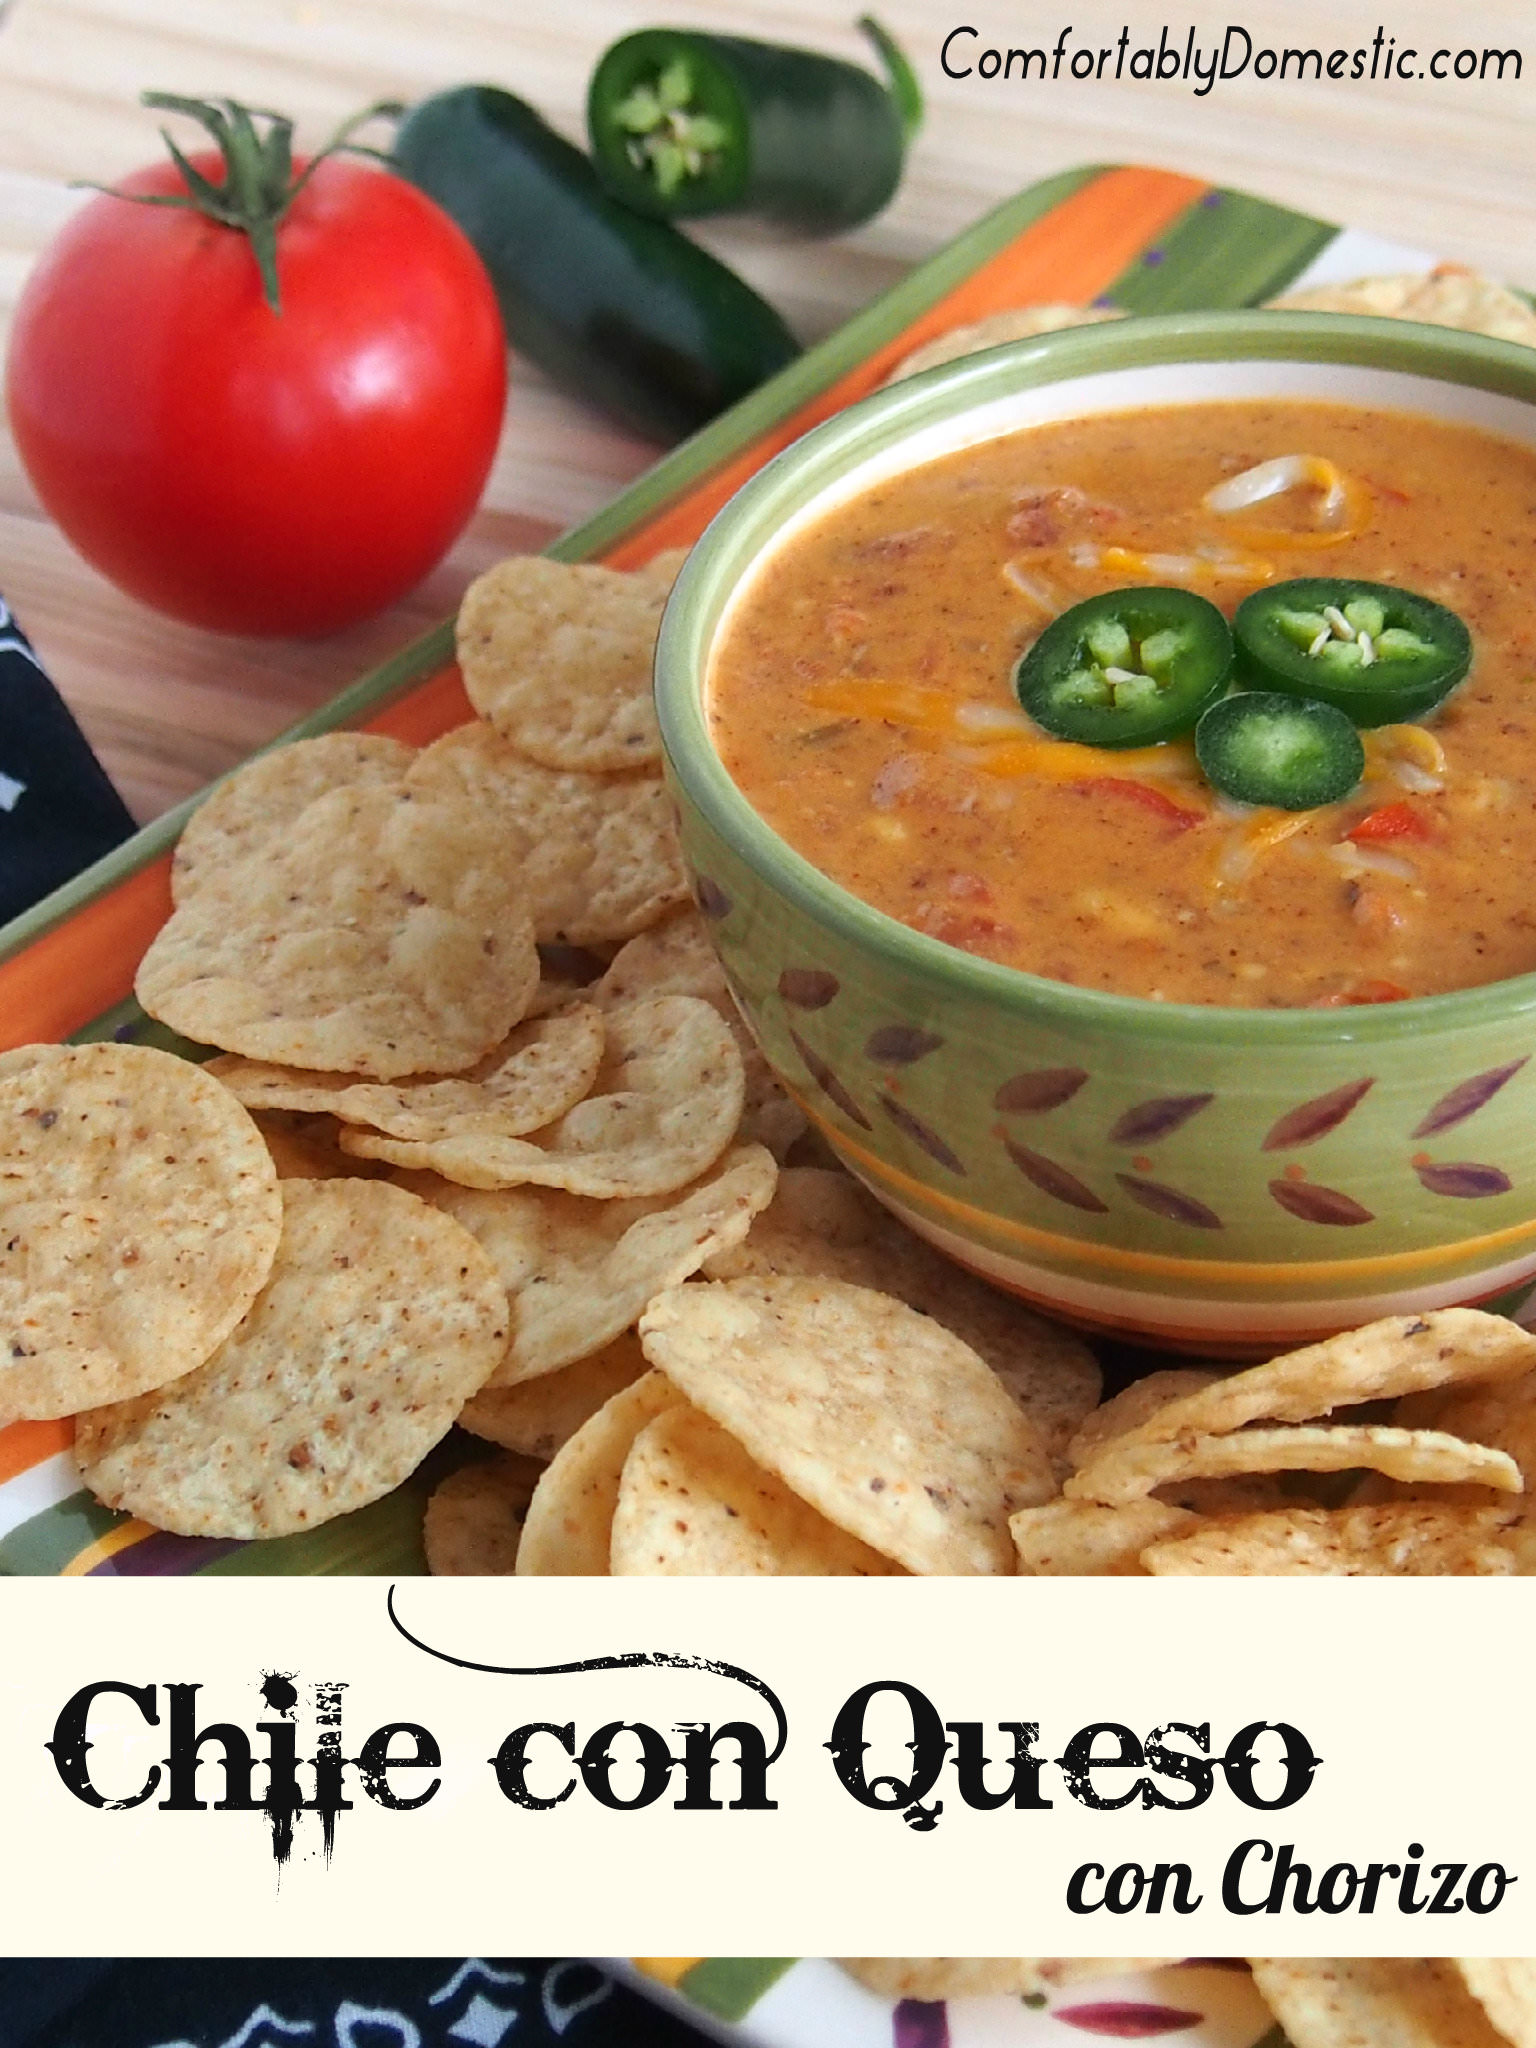 Chile con queso con chorizo is a deliciously creamy, chile-infused, Tex-Mex style cheese dip, made extra special with the addition of chorizo sausage. | ComfortablyDomestic.com